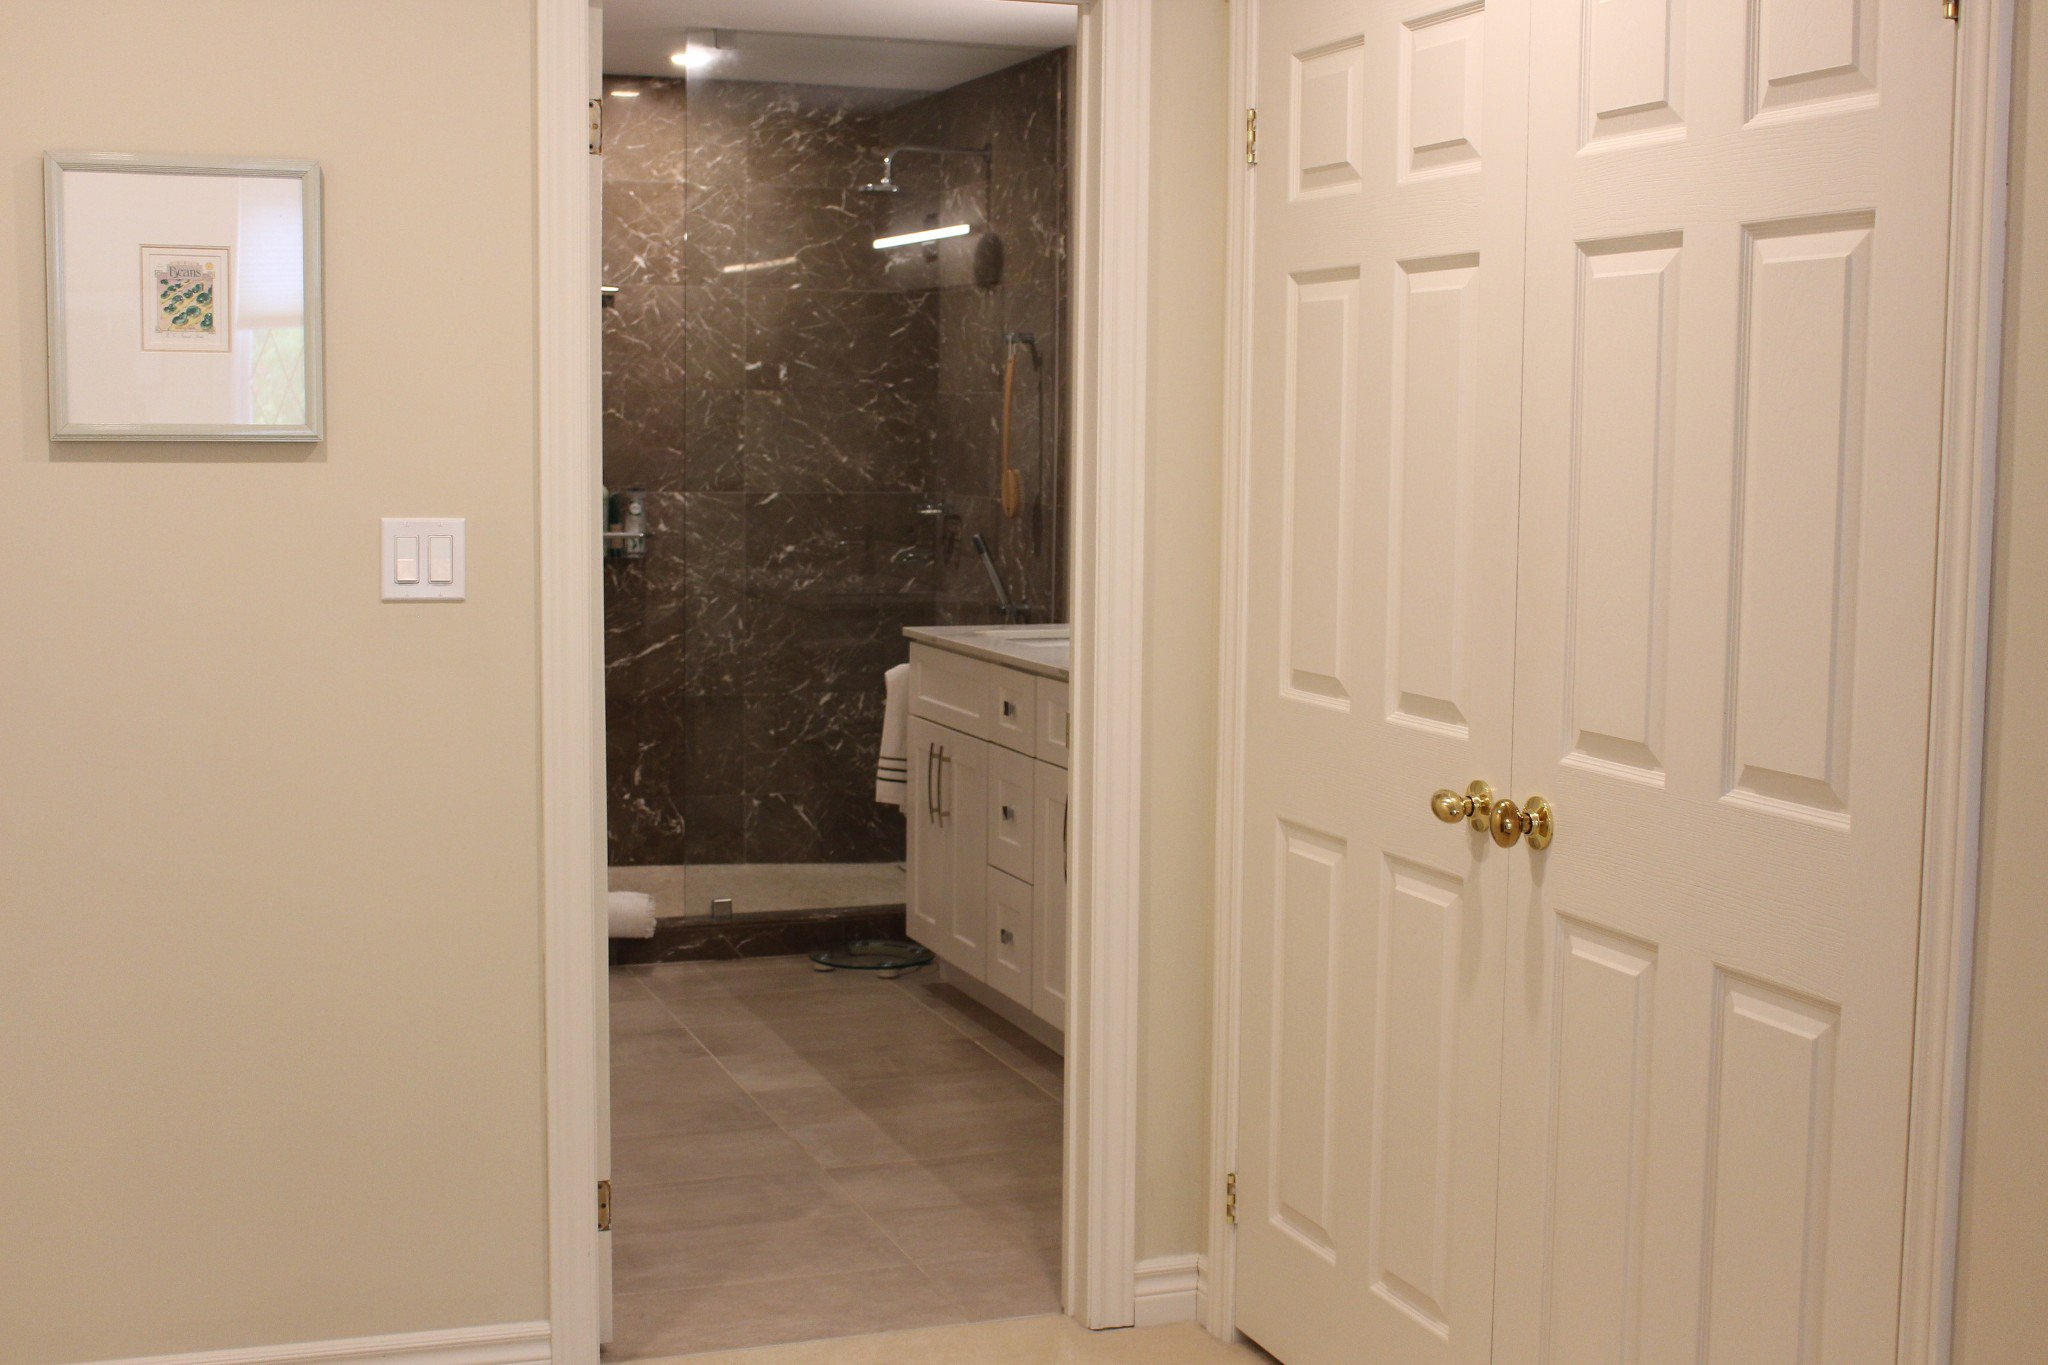 Photo 22: Photos: 113 245 Elgin Street in Cobourg: Residential Attached for sale : MLS®# 219780